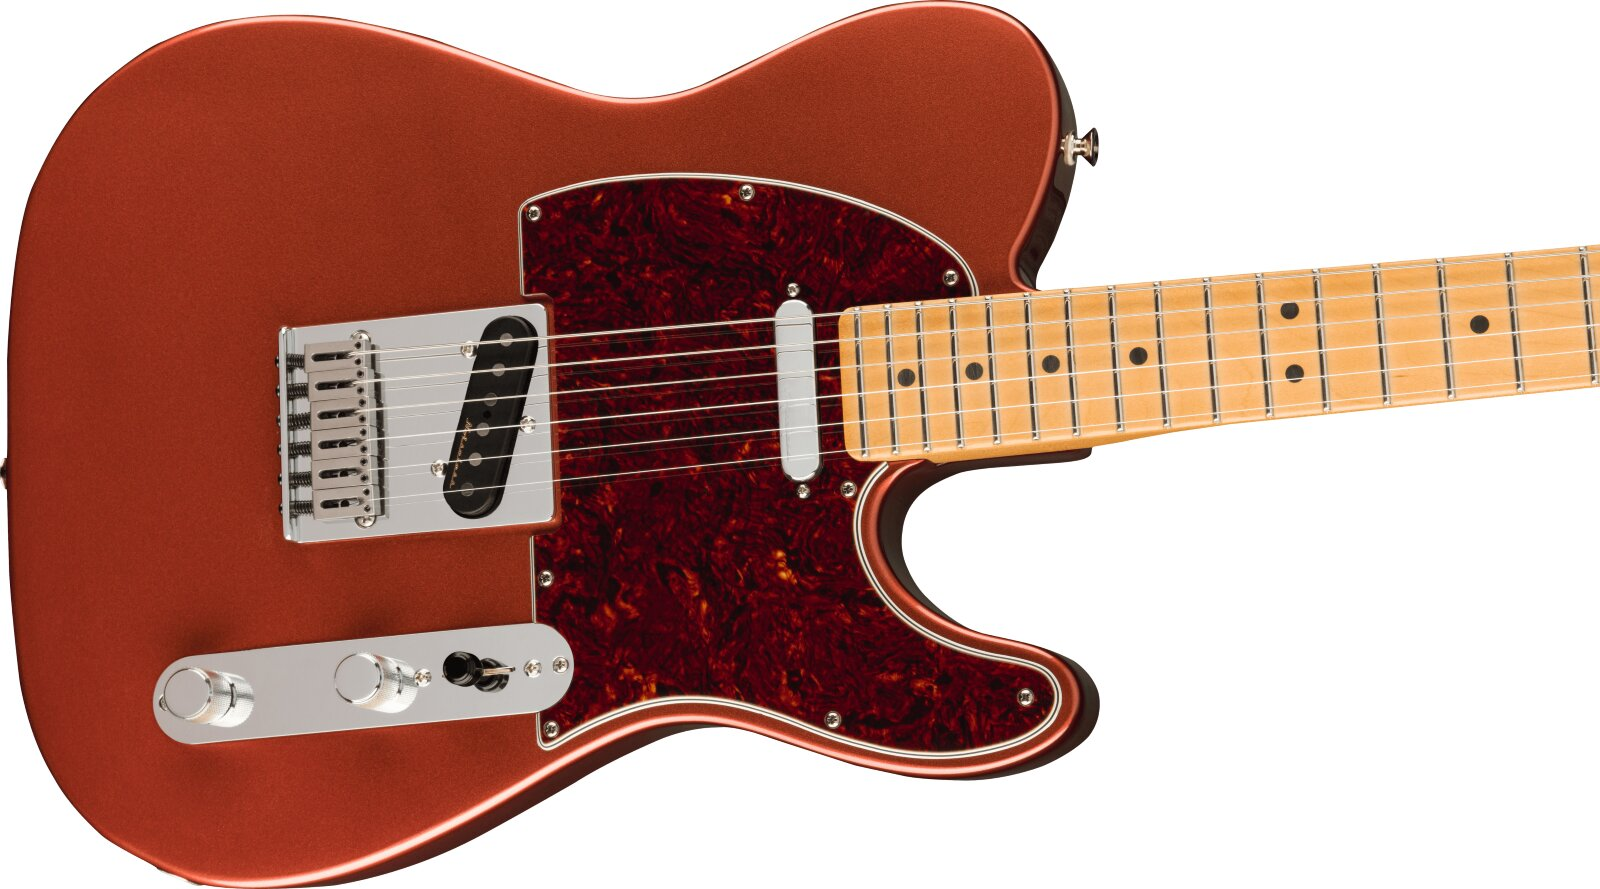 Fender Player Plus Telecaster, Maple Fingerboard, Aged Candy Apple Red : photo 3